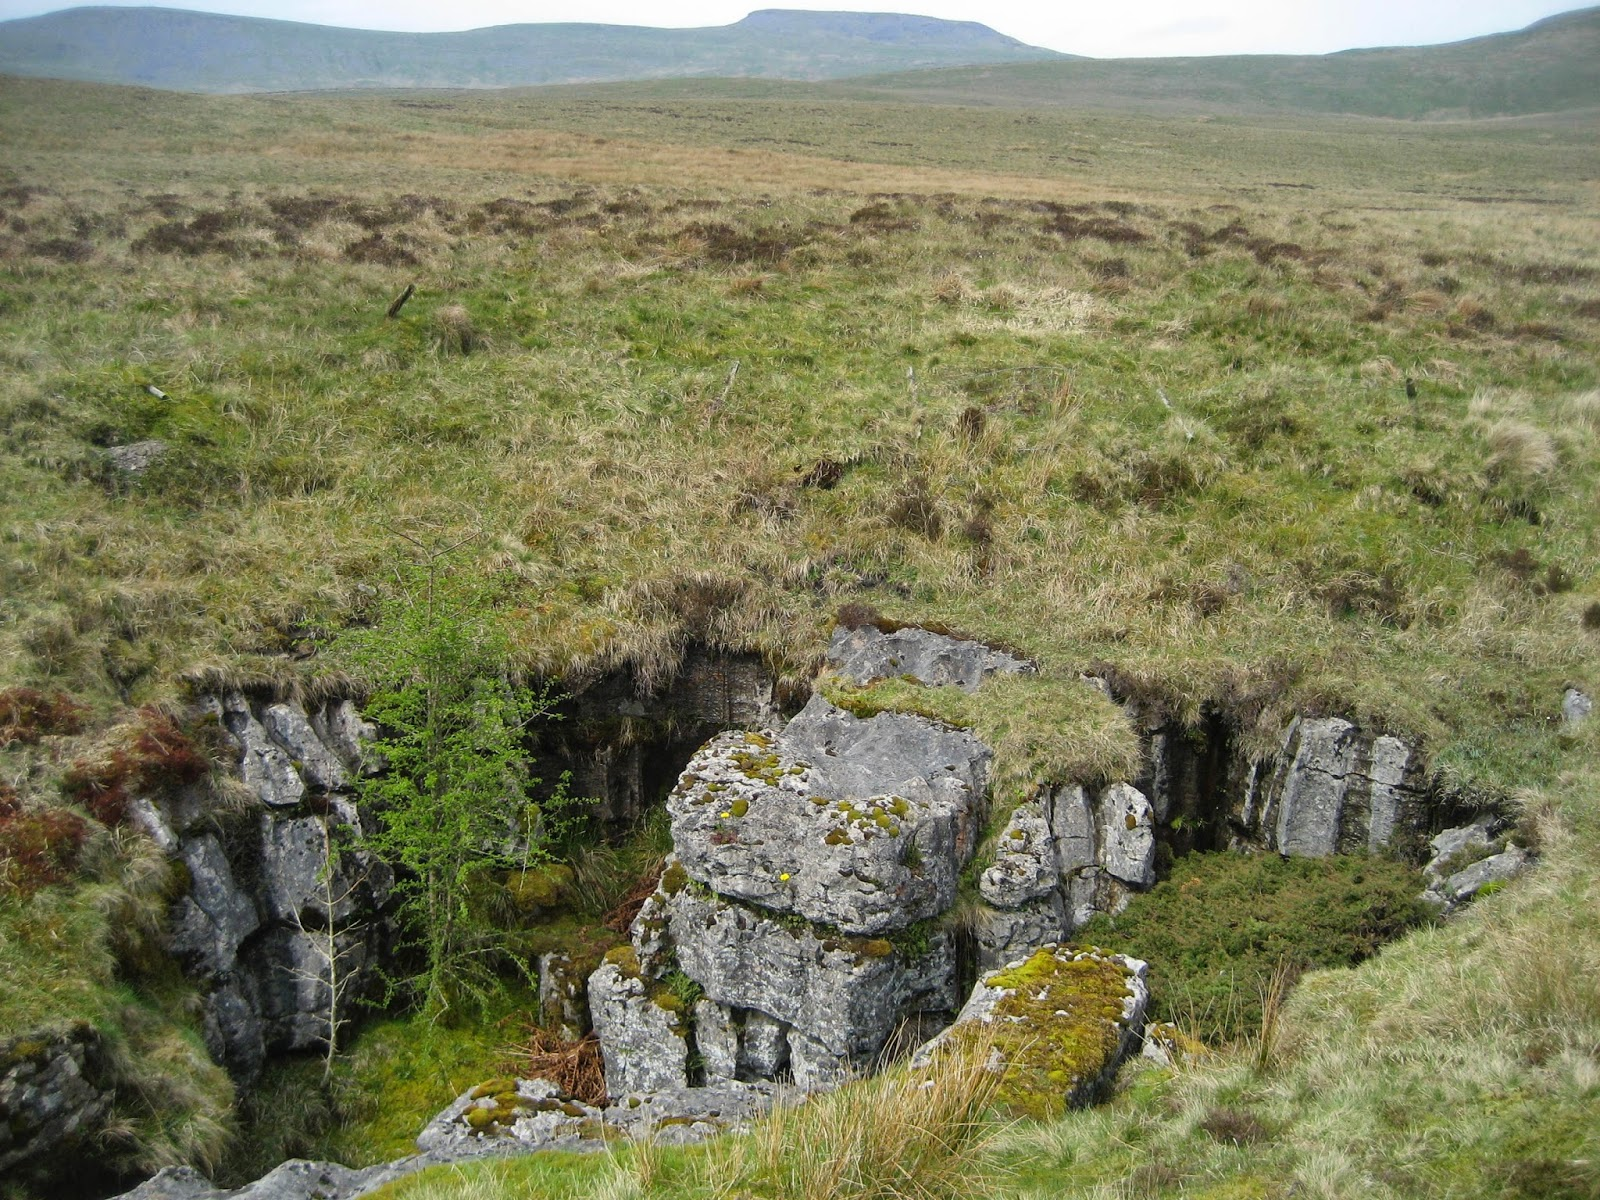 Oasis in a drab wilderness: the attractive ancient shaft of Little Juniper, with Simon Fell, a satellite of Ingleborough, behind. Stephen Oldfield